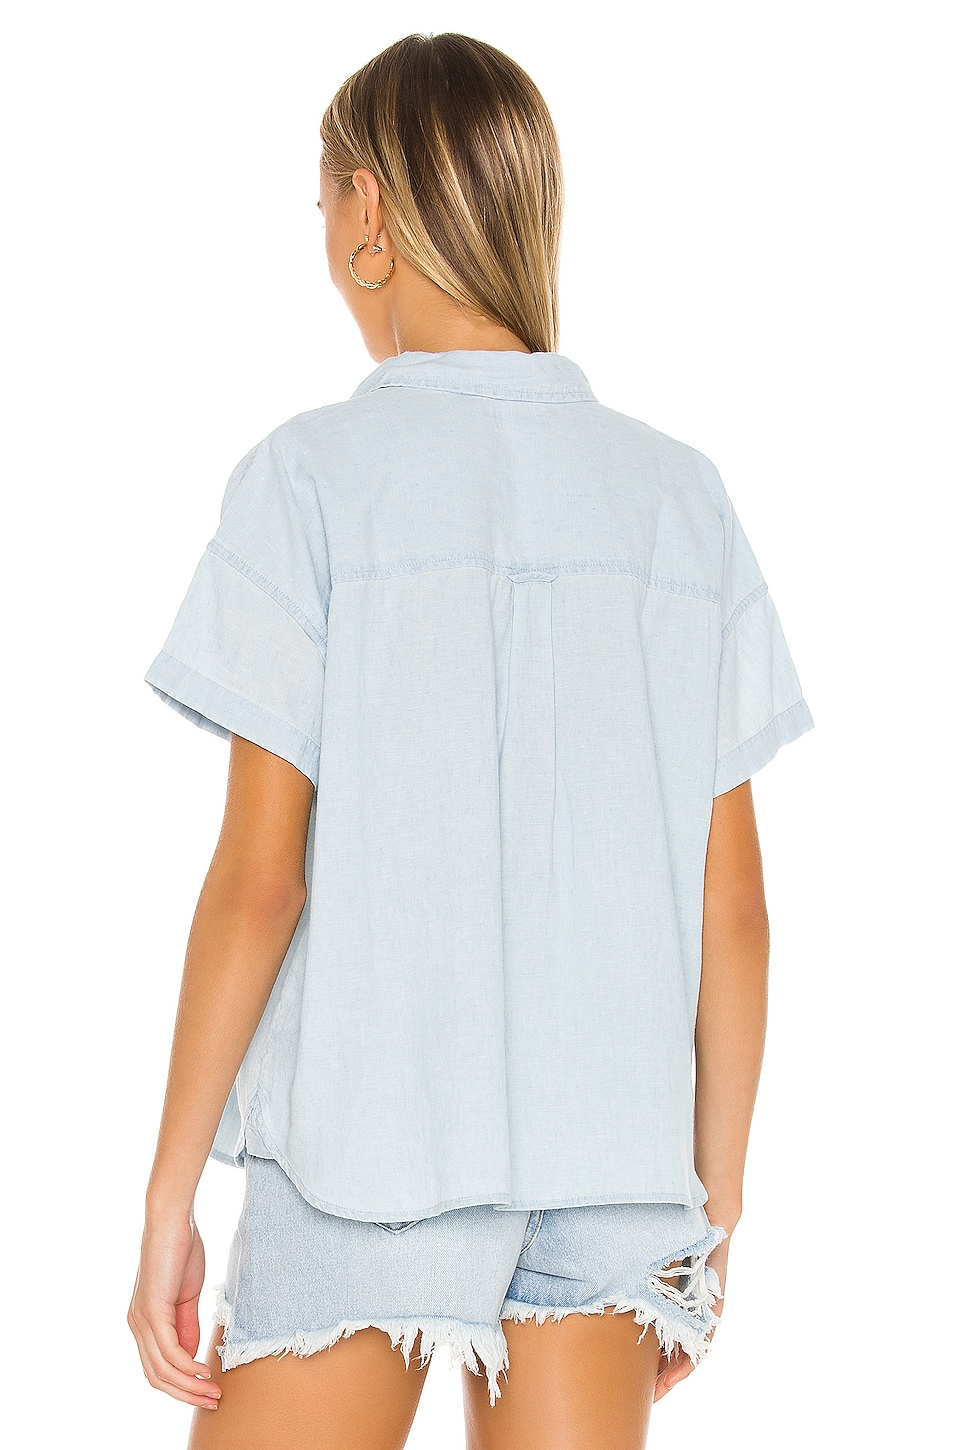 The Short Sleeve Alexandra Shirt, view 3, click to view large image.